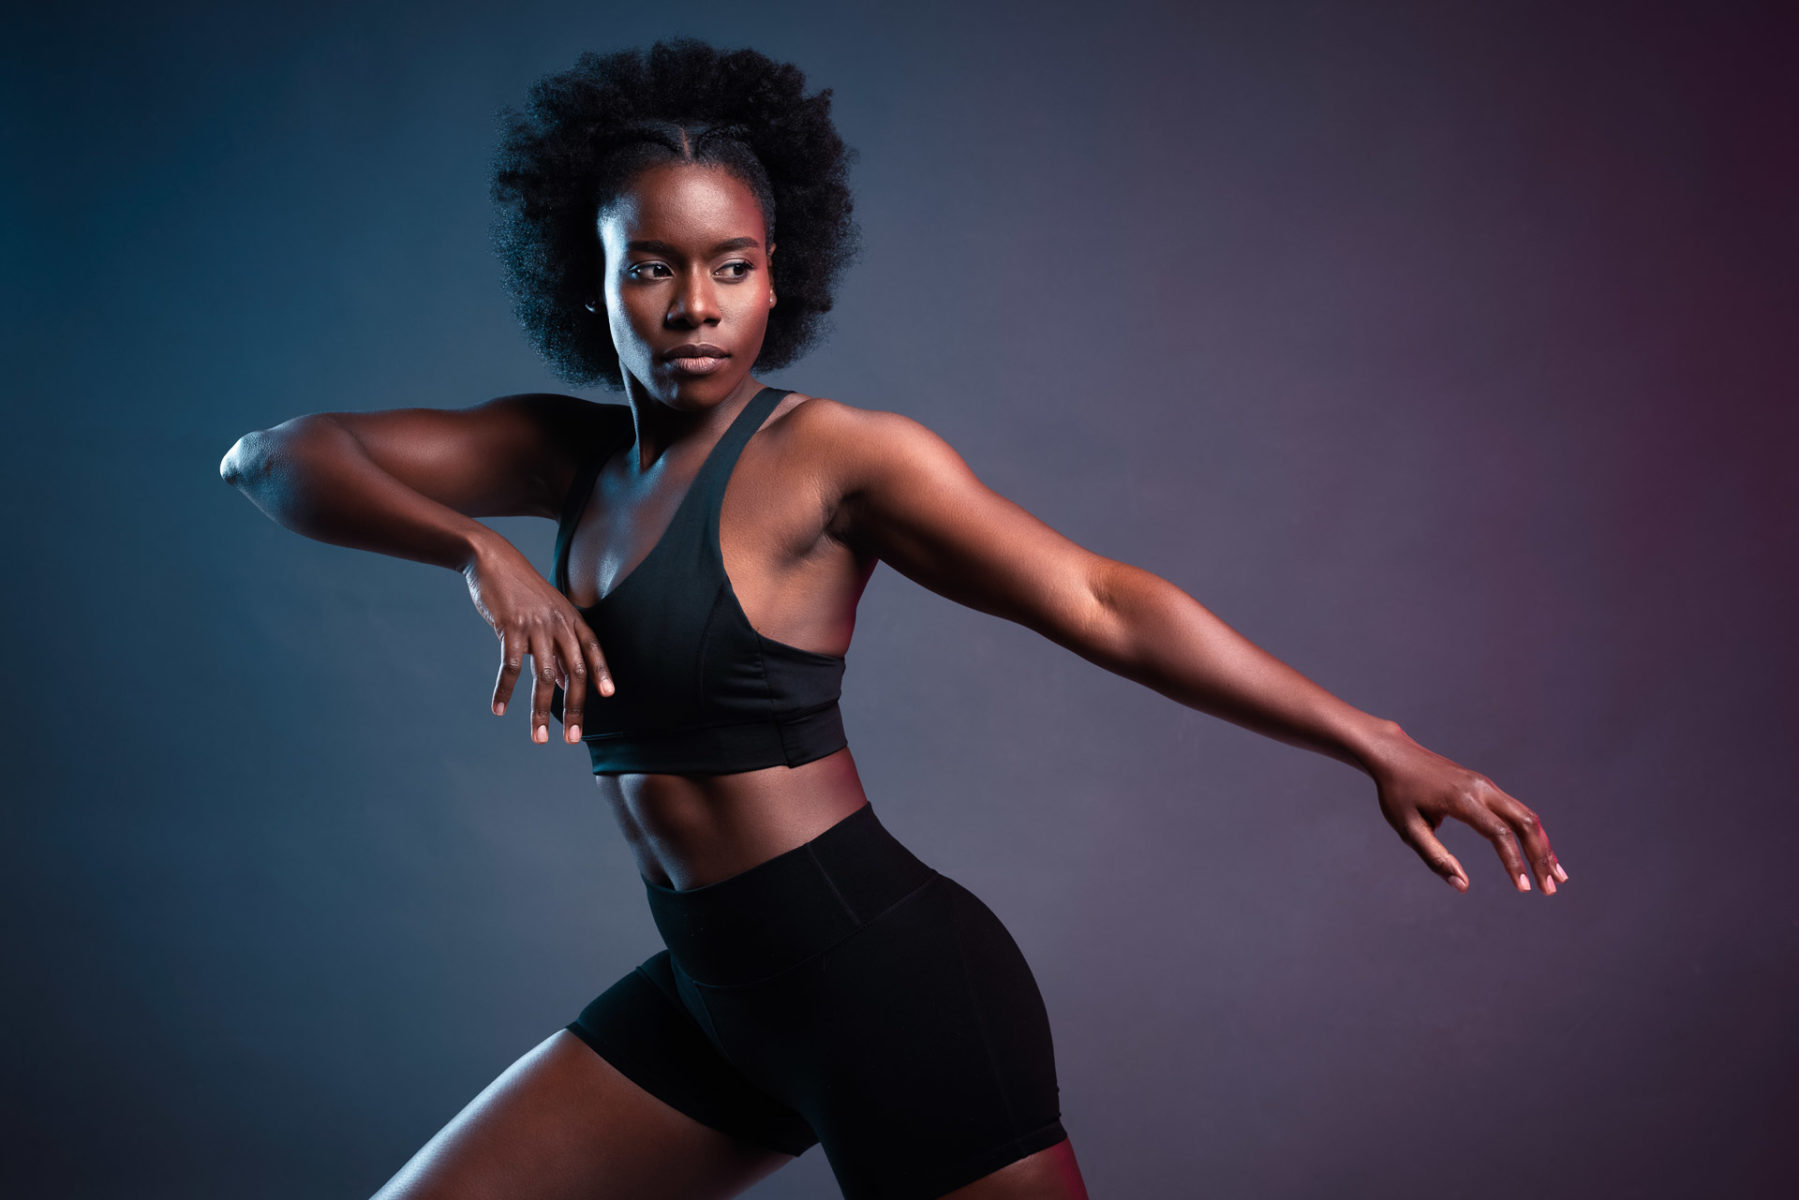 Fitness and activewear photography and modeling